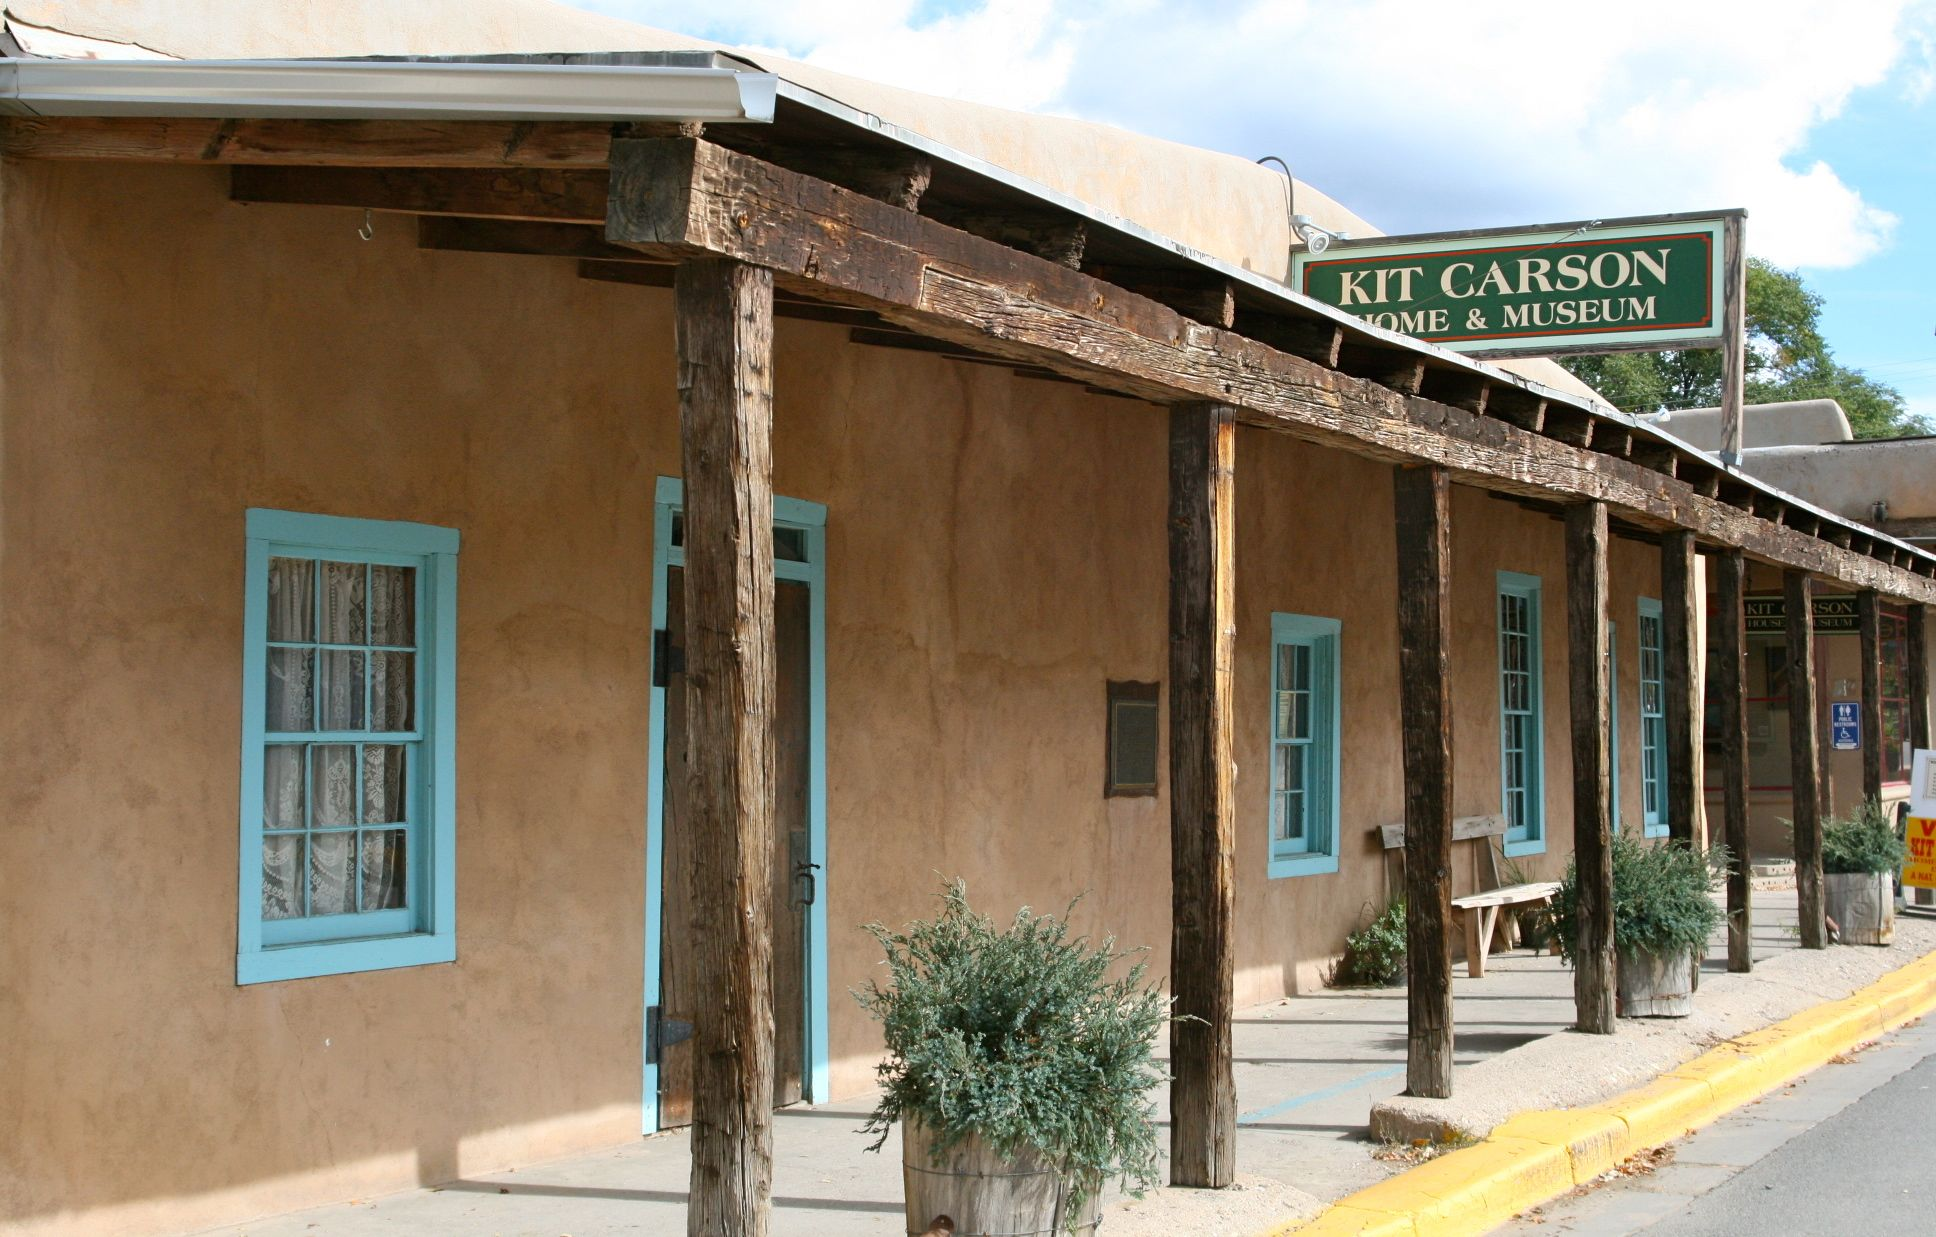 New mexico taos county carson - Taos Arts And Cultural District